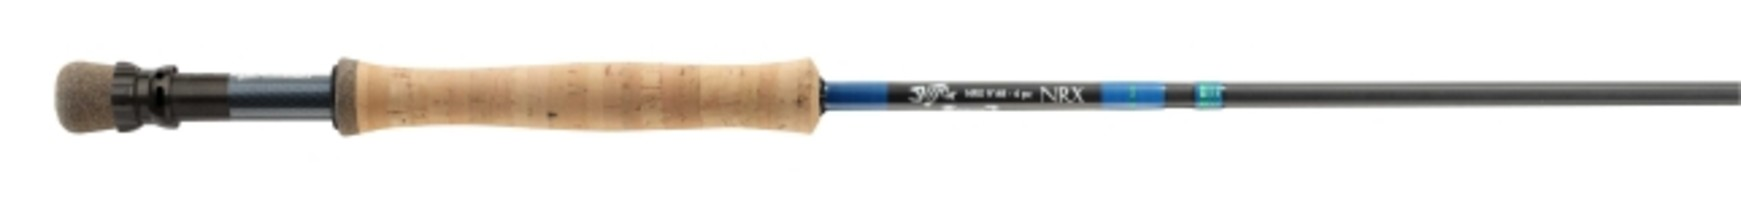 g loomis nrx saltwater fly rod review